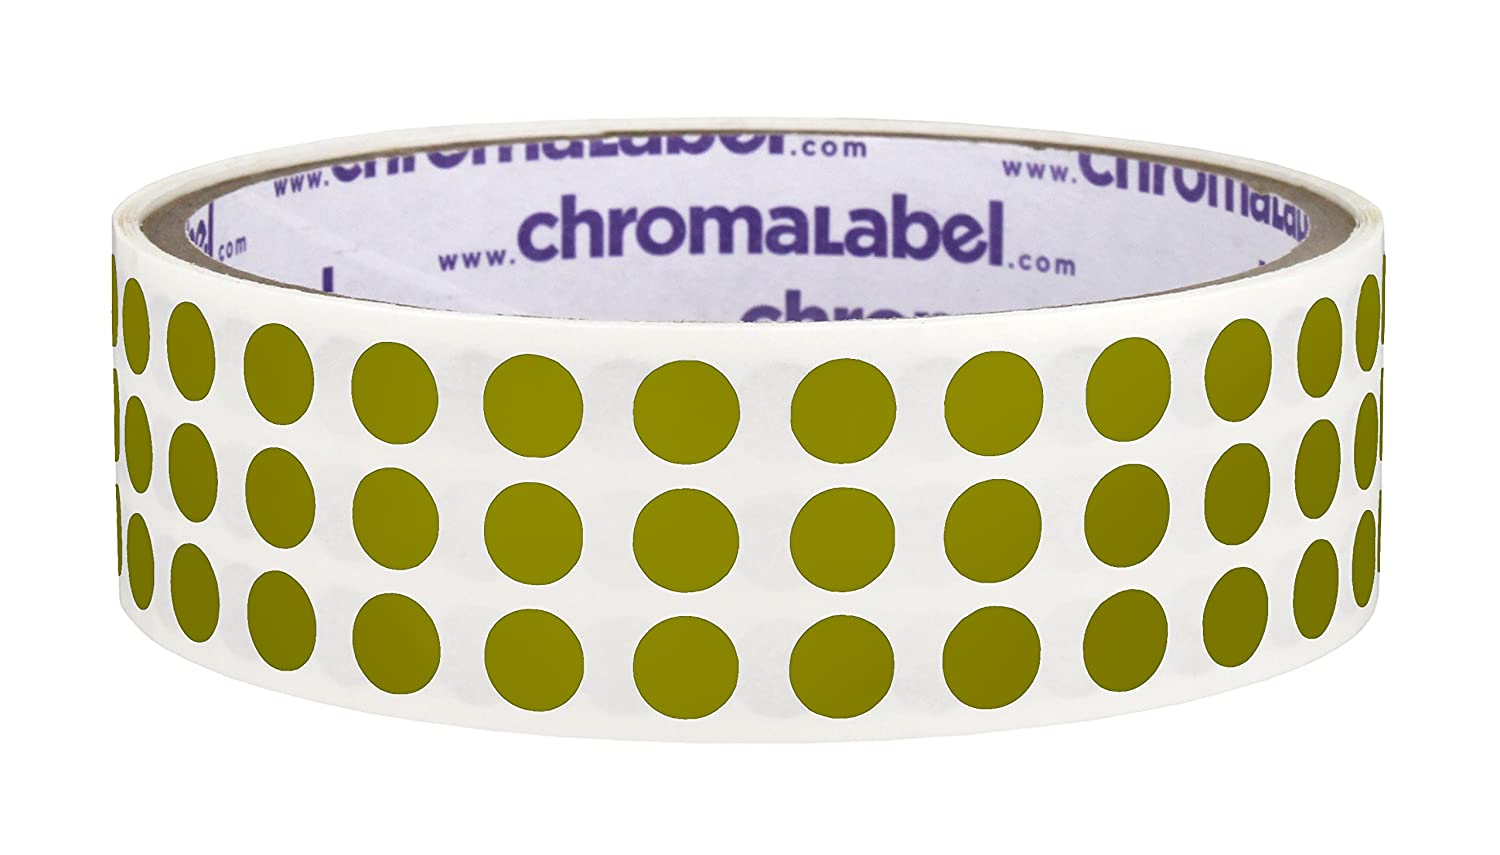 Olive Color Code Amazon.com : ChromaLabel 1-4 inch Color-Code Dot Labels | 1, 000-Roll (Olive)  : Office Products